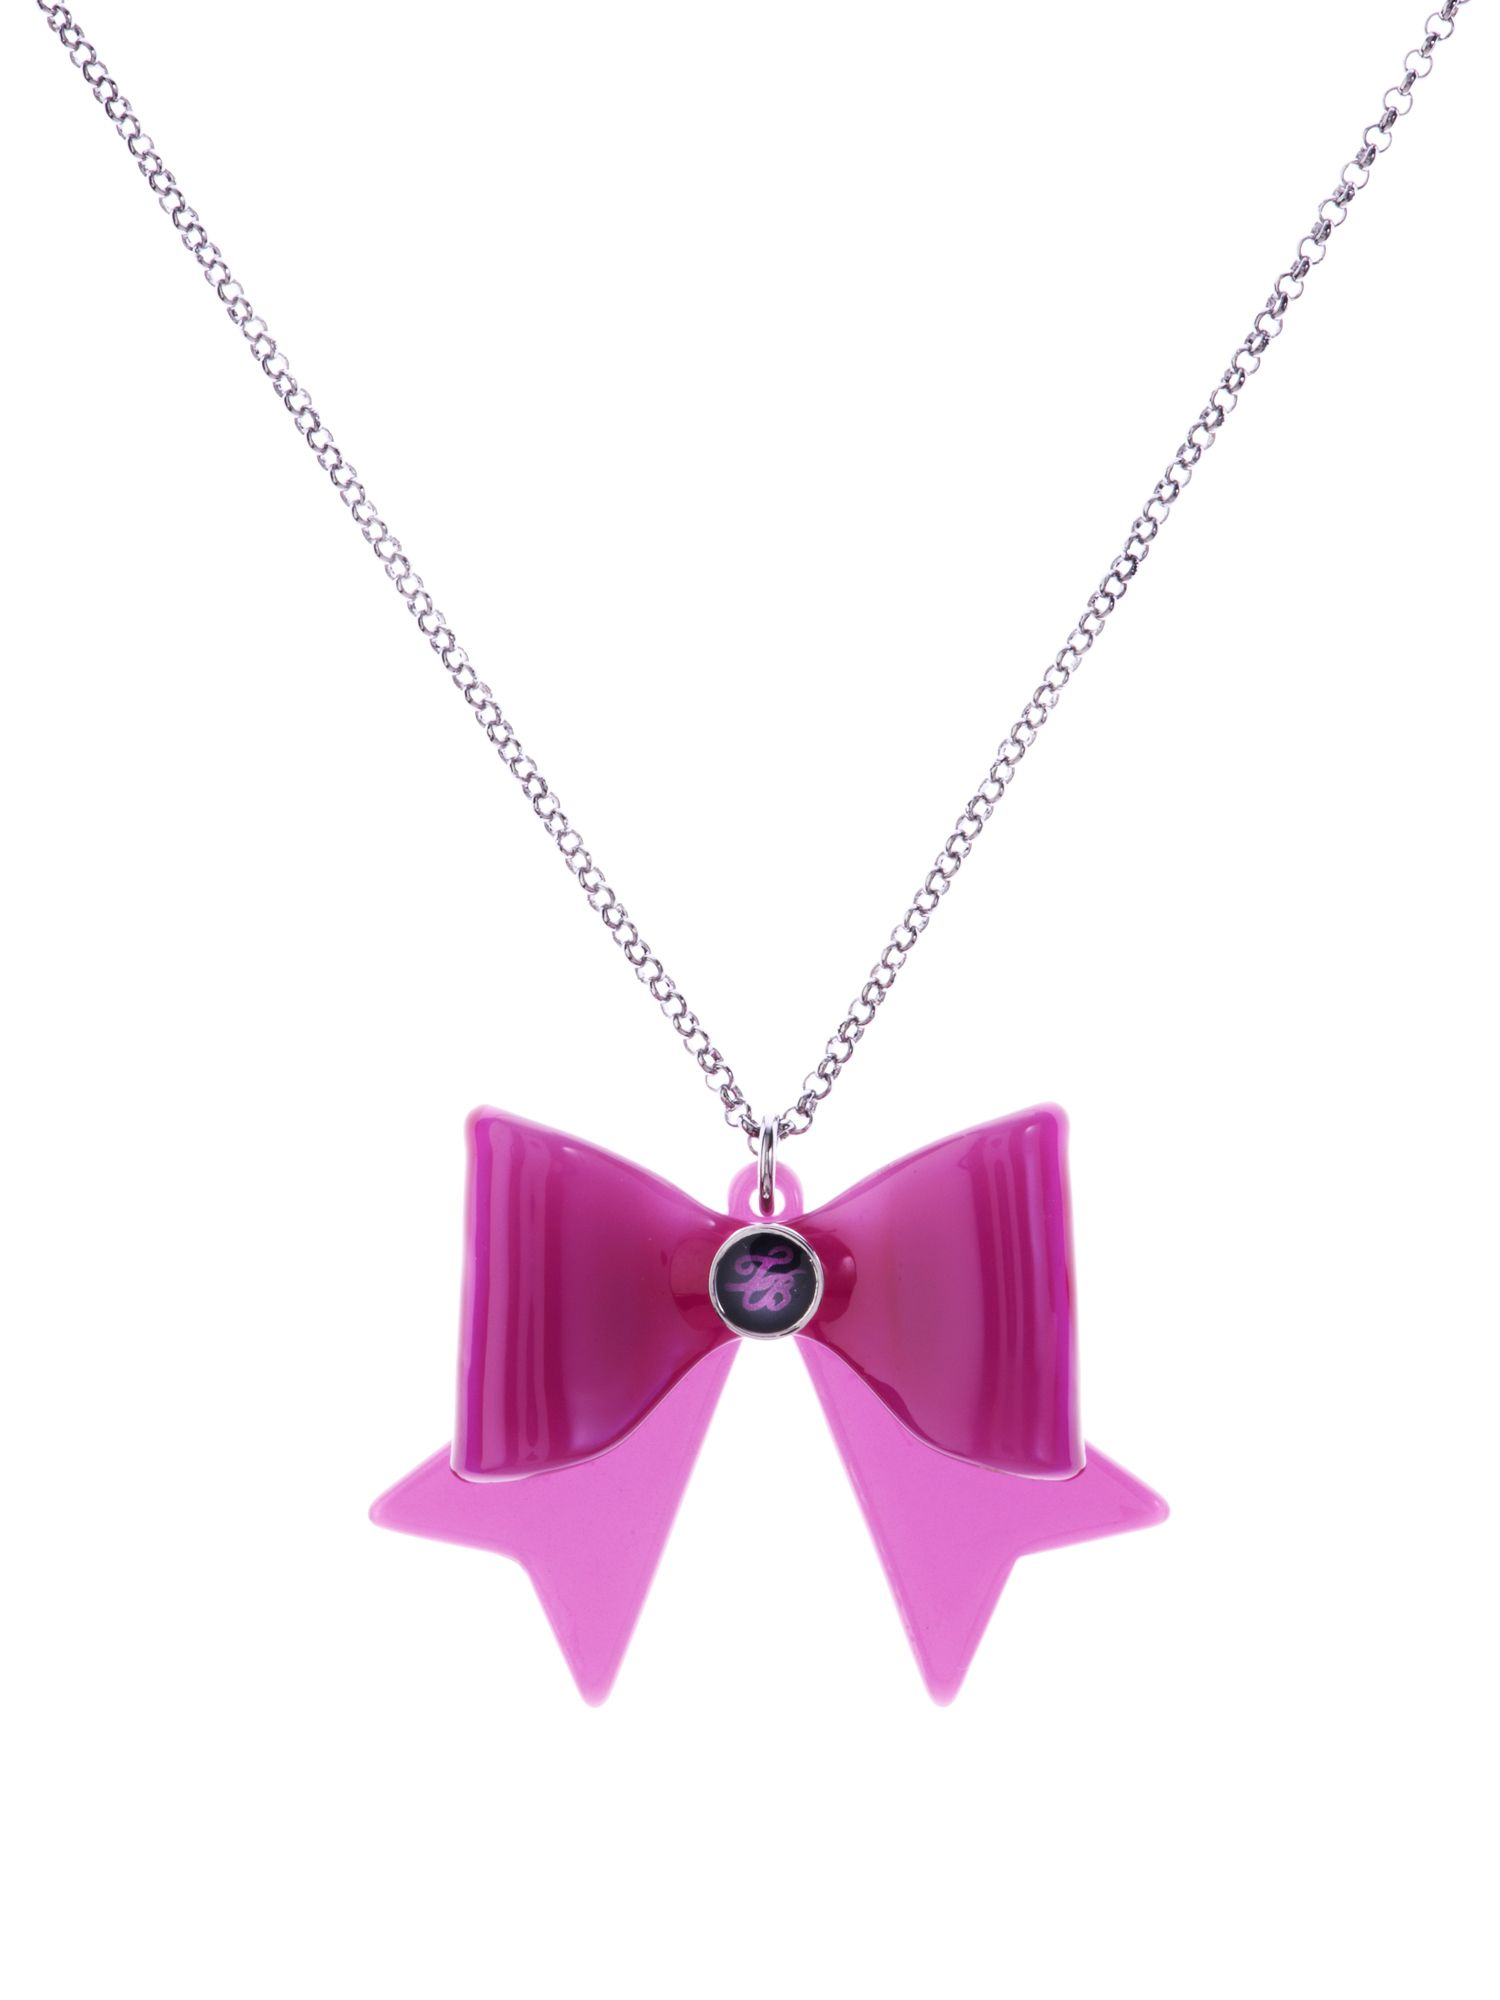 Ted Baker acrylic bow necklace